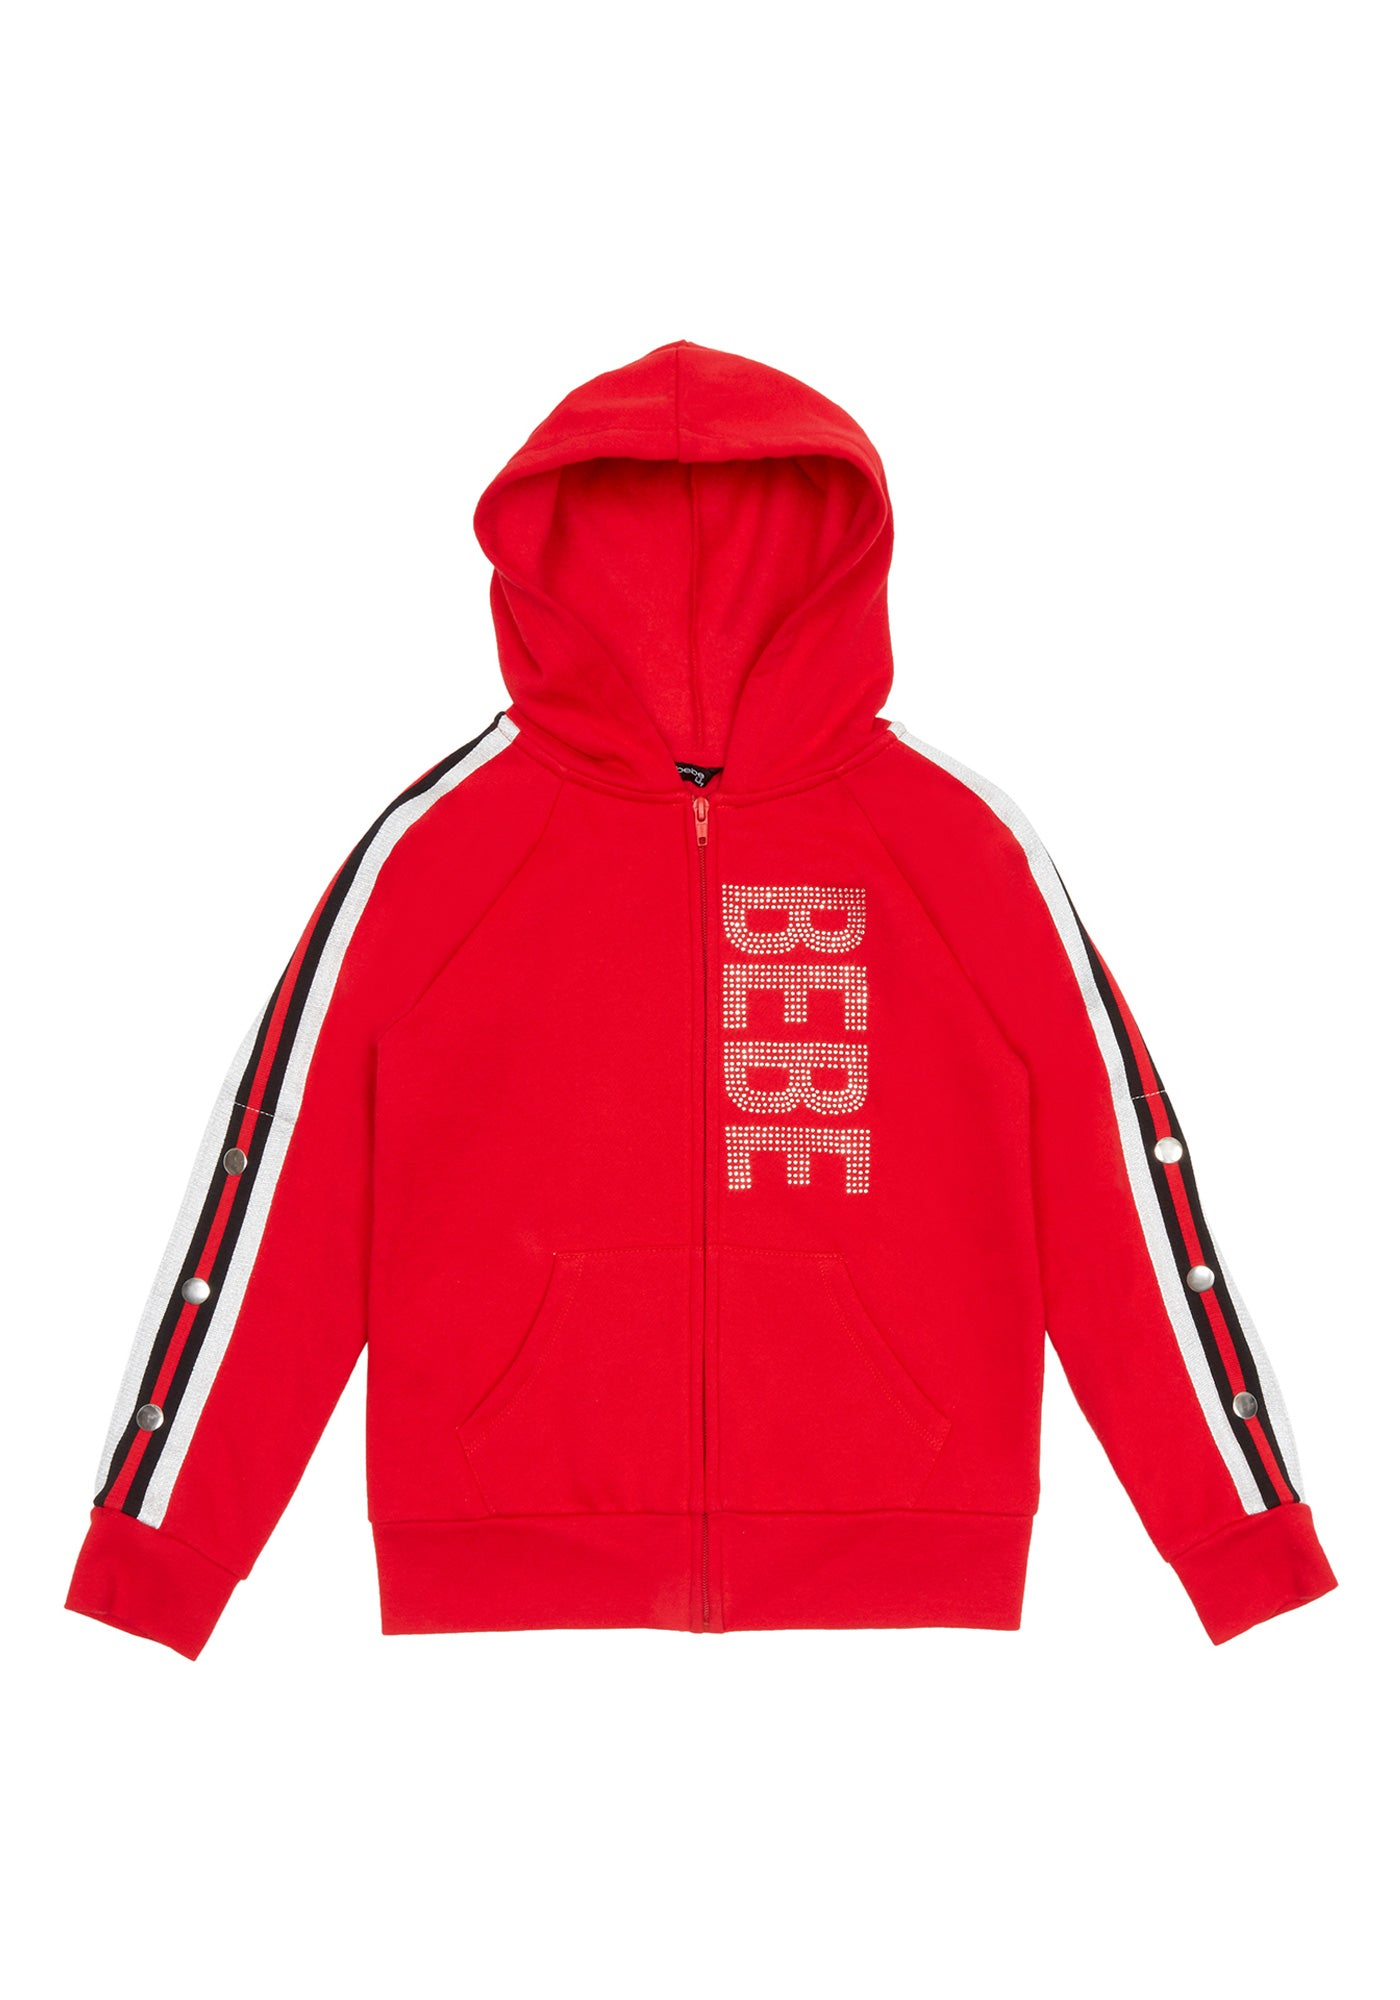 Image of Bebe Women's Girls Sparkly Logo Fleece Jacket, Size M(10-12) in Red Cotton